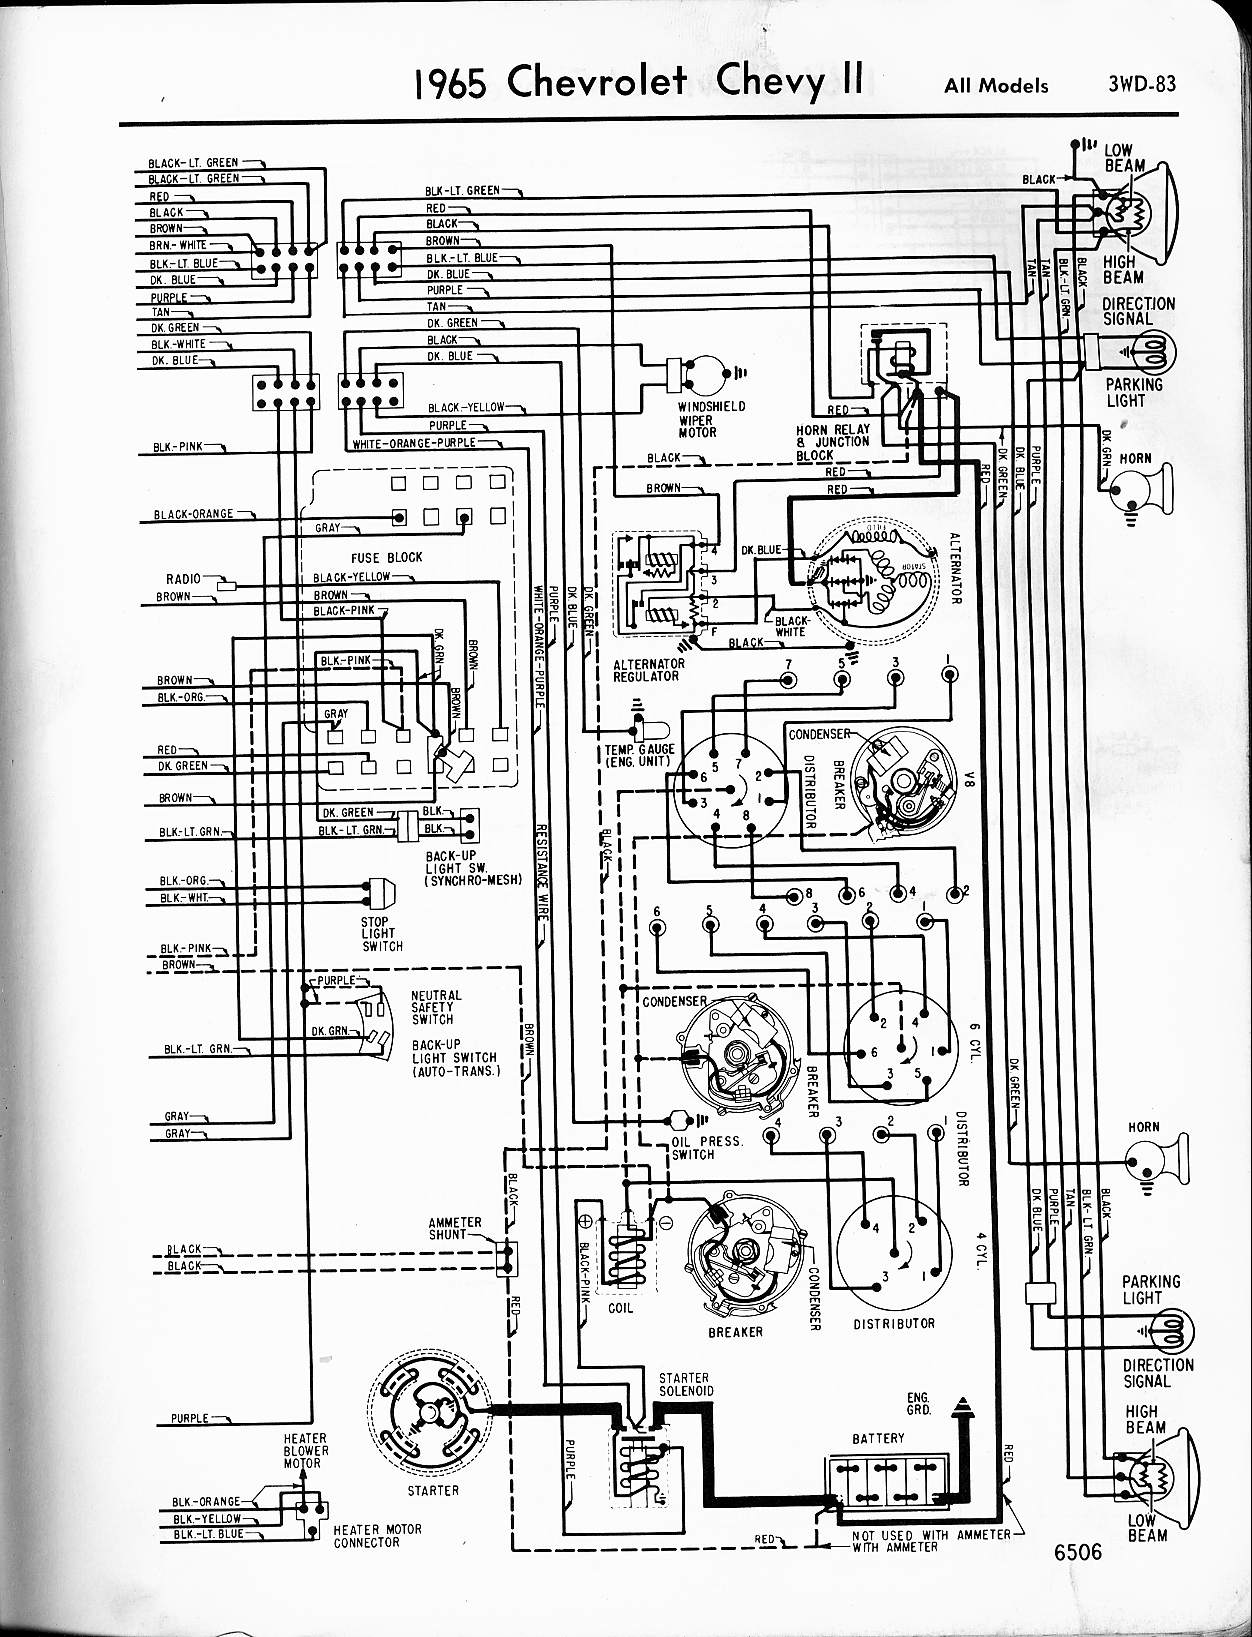 MWireChev65_3WD 083 chevy diagrams 1965 chevy truck turn signal wiring diagram at reclaimingppi.co